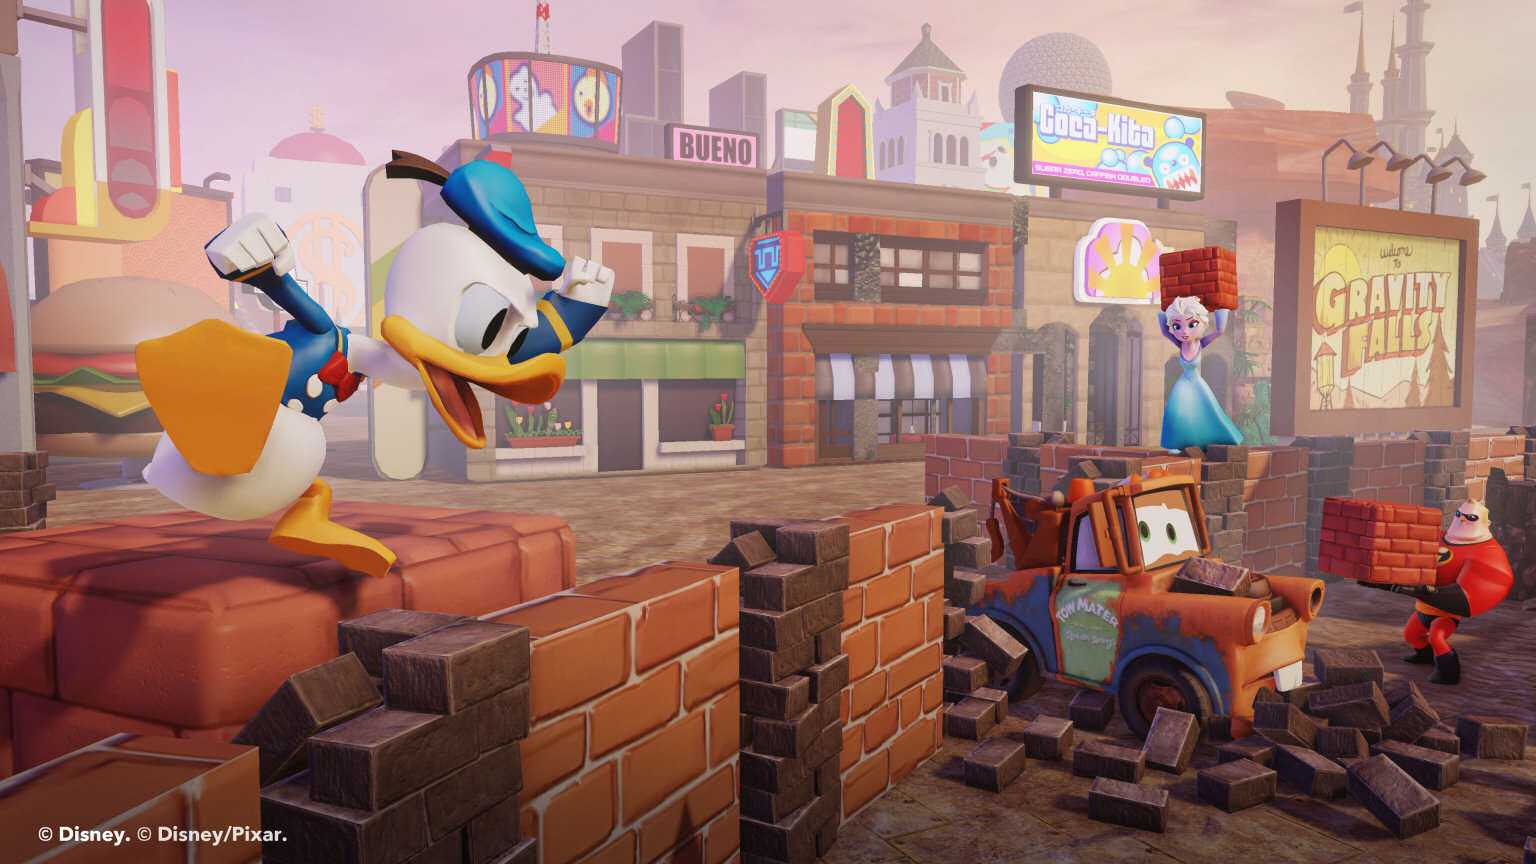 Avalanche Studios Disney Related to Avalanche Studios